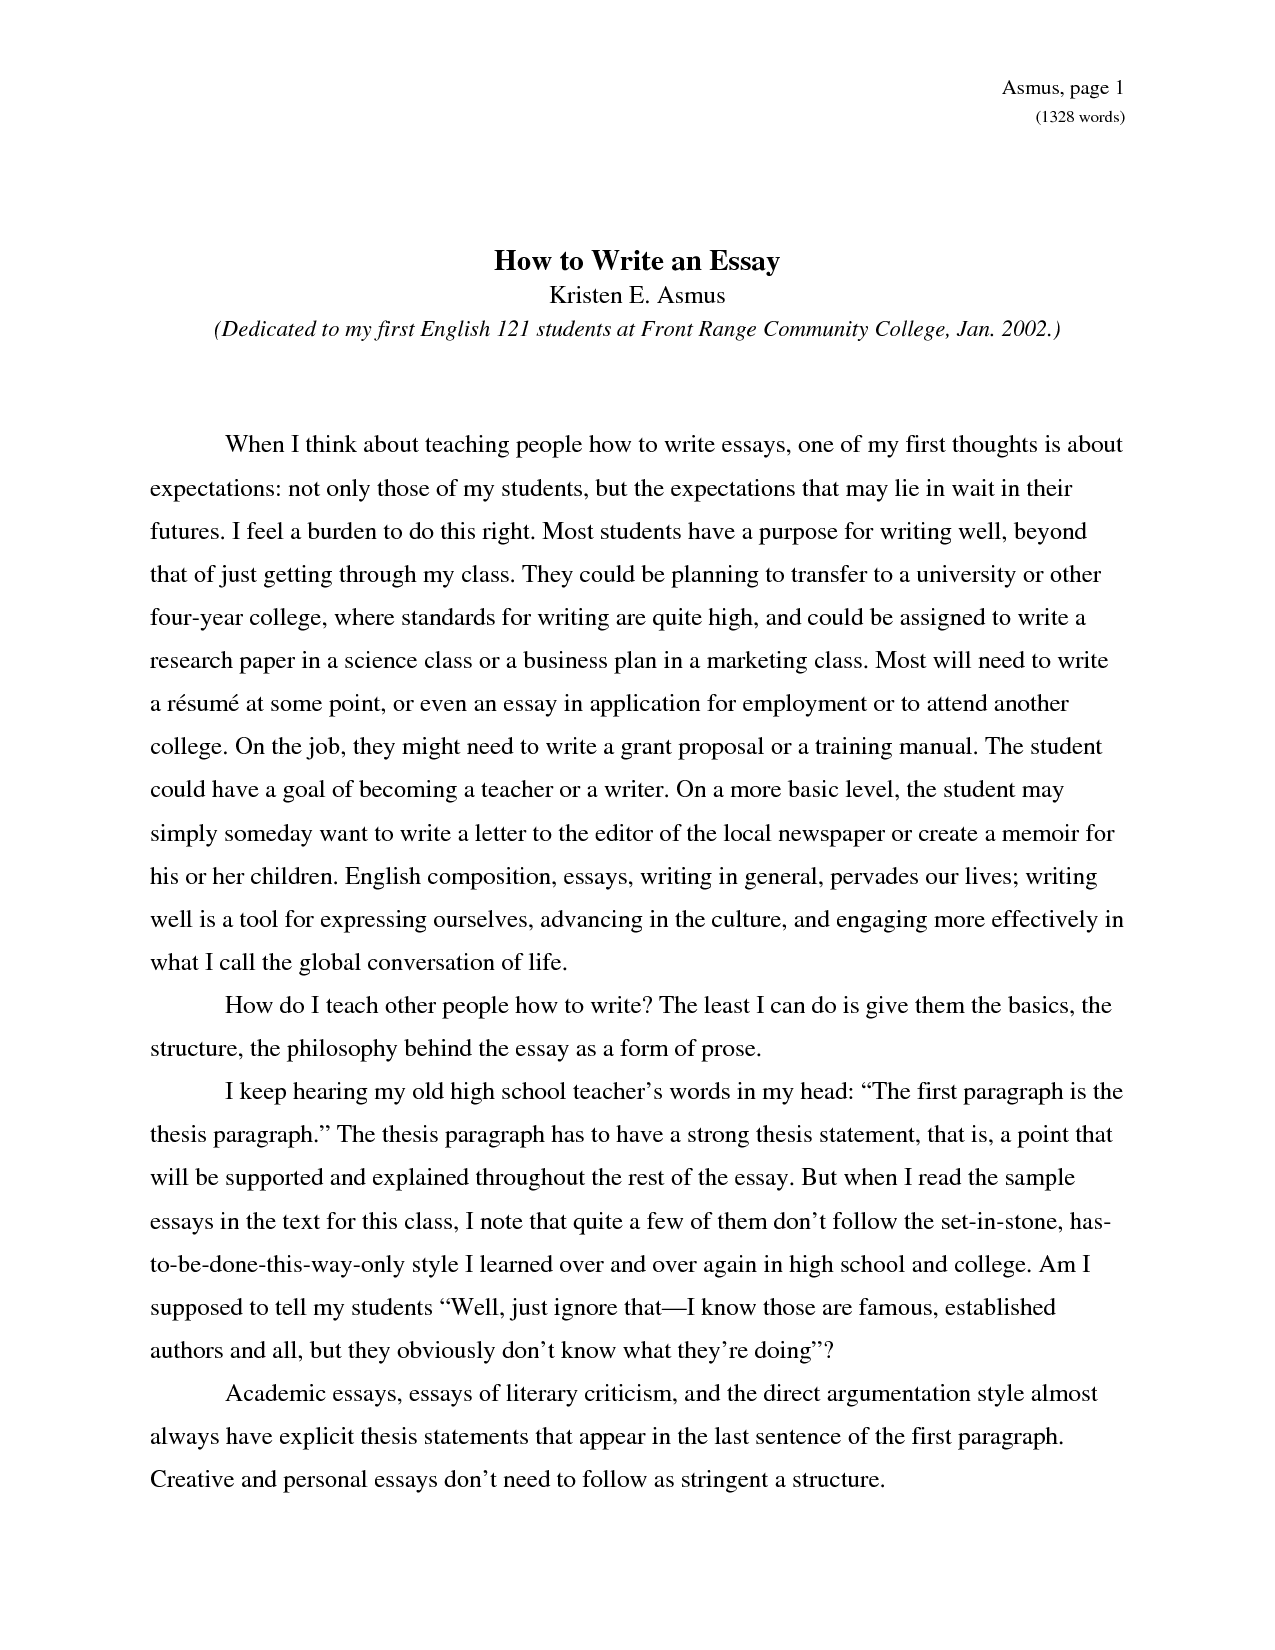 010 How To Write Essay Example An Obfuscata L Amazing About Yourself For A Job Interview Titles In Paper Full